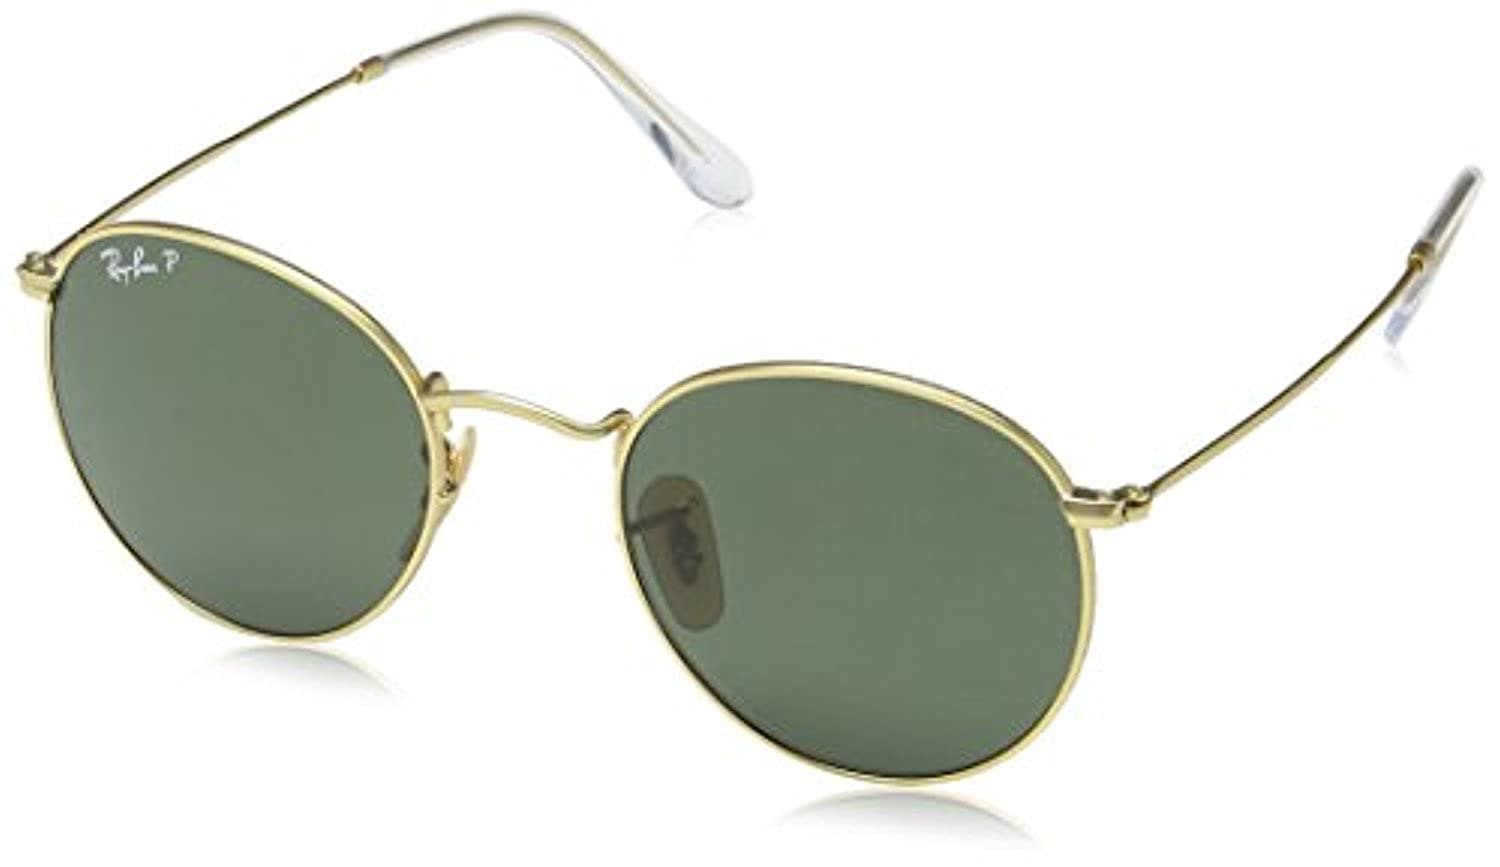 RB RB3447 Round Metal Sunglasses Matte Gold//Polarized Green 50mm /& Carekit